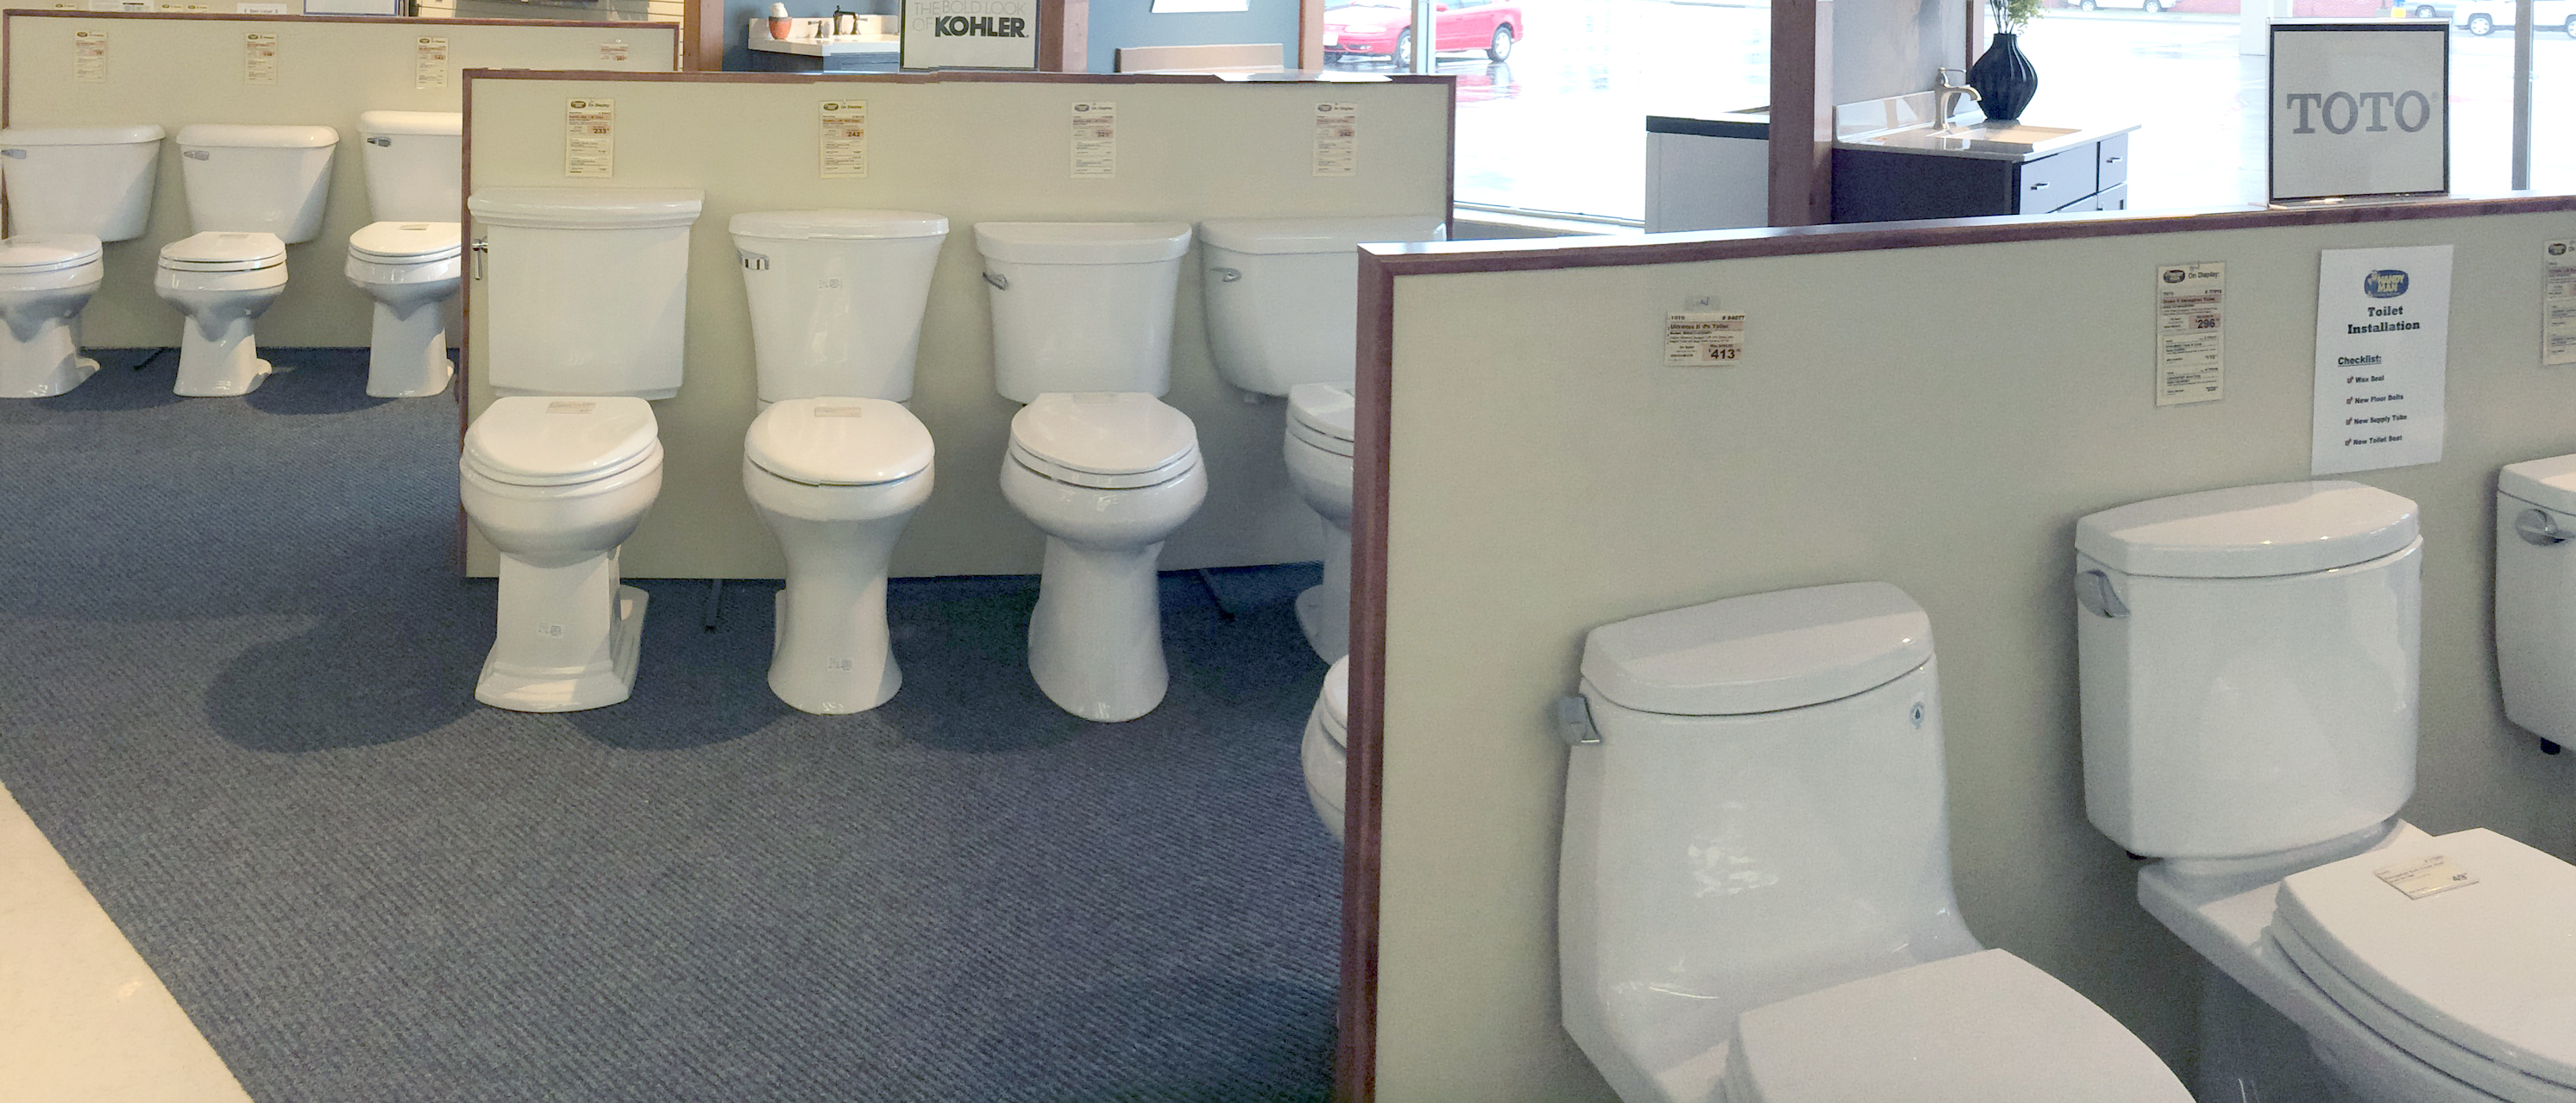 Handy Man | TOILETS: The Throne at Home